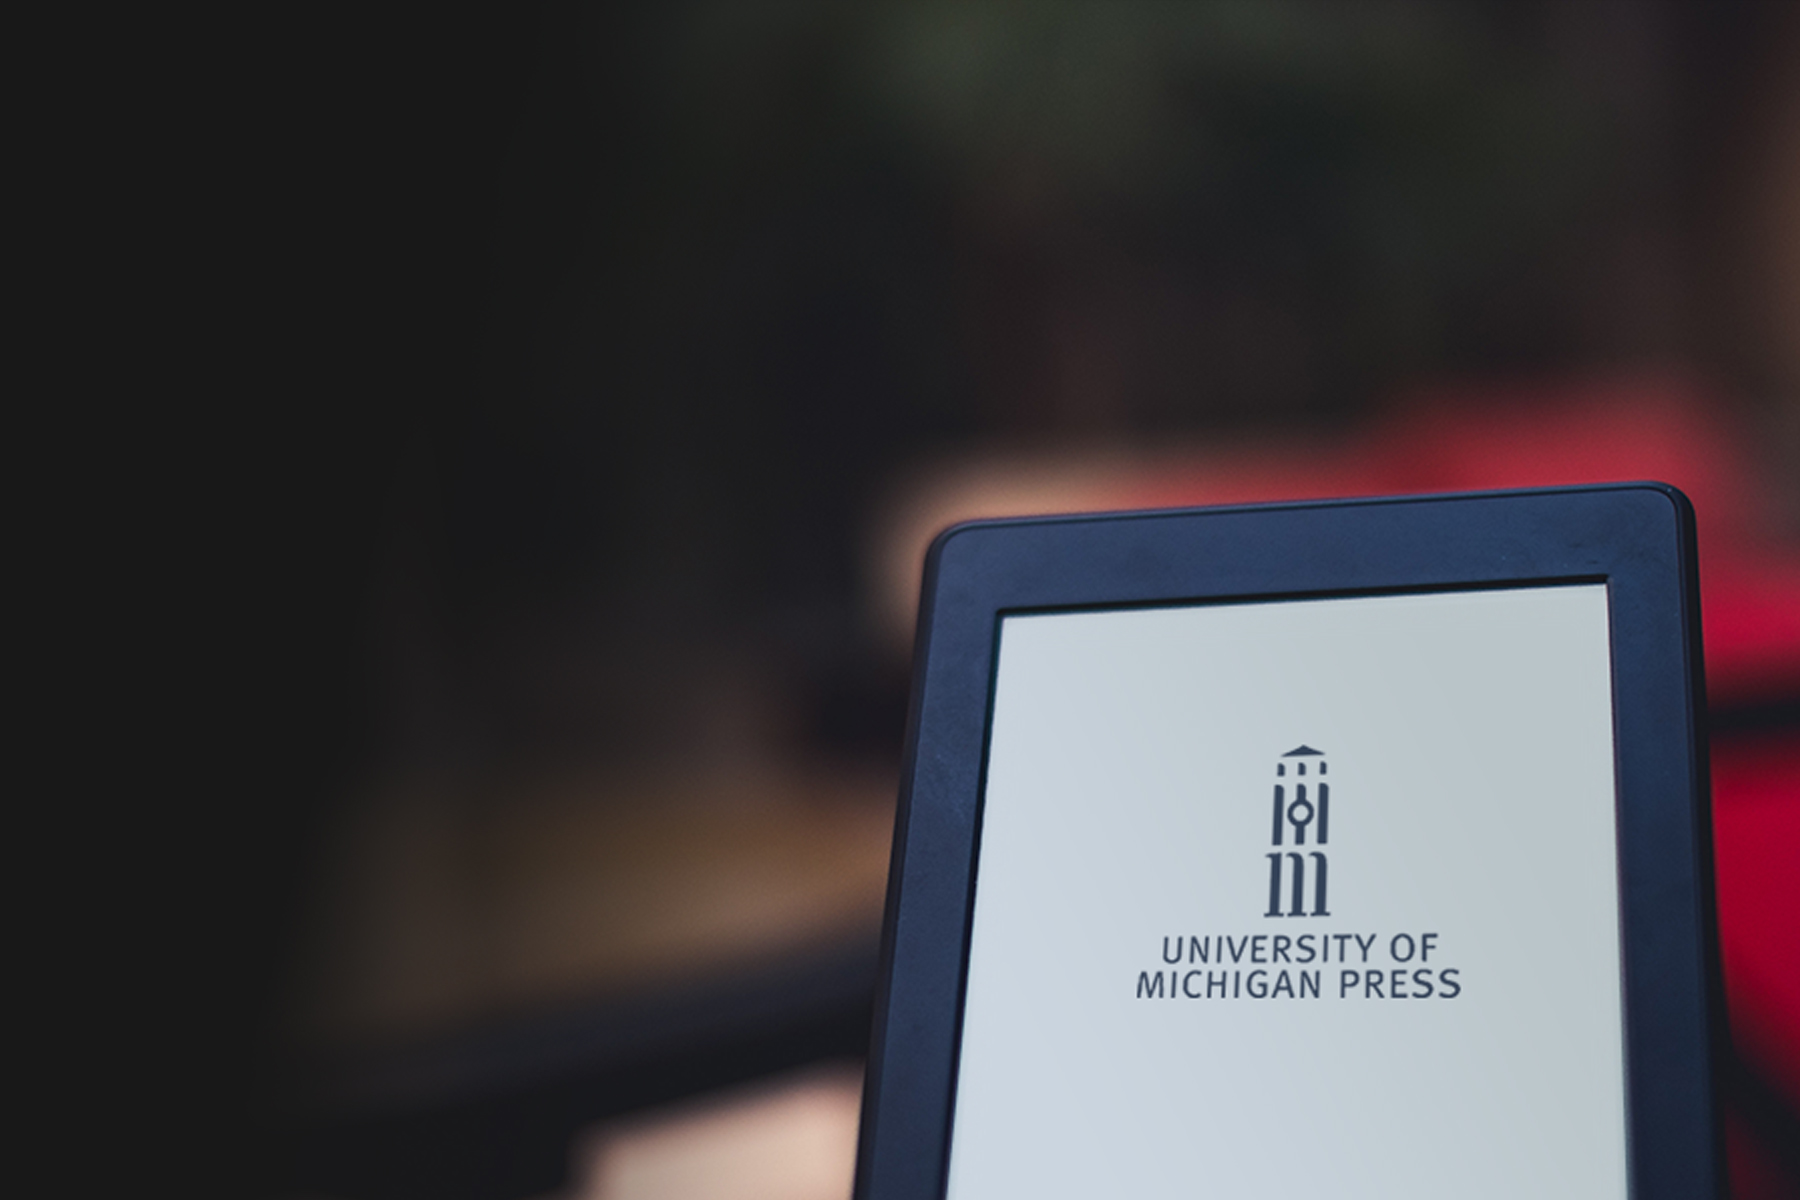 Press Release: LYRASIS and University of Michigan Press Announce New University of Michigan Press Ebook Collection, a Community-Supported Scholarly Research Collection